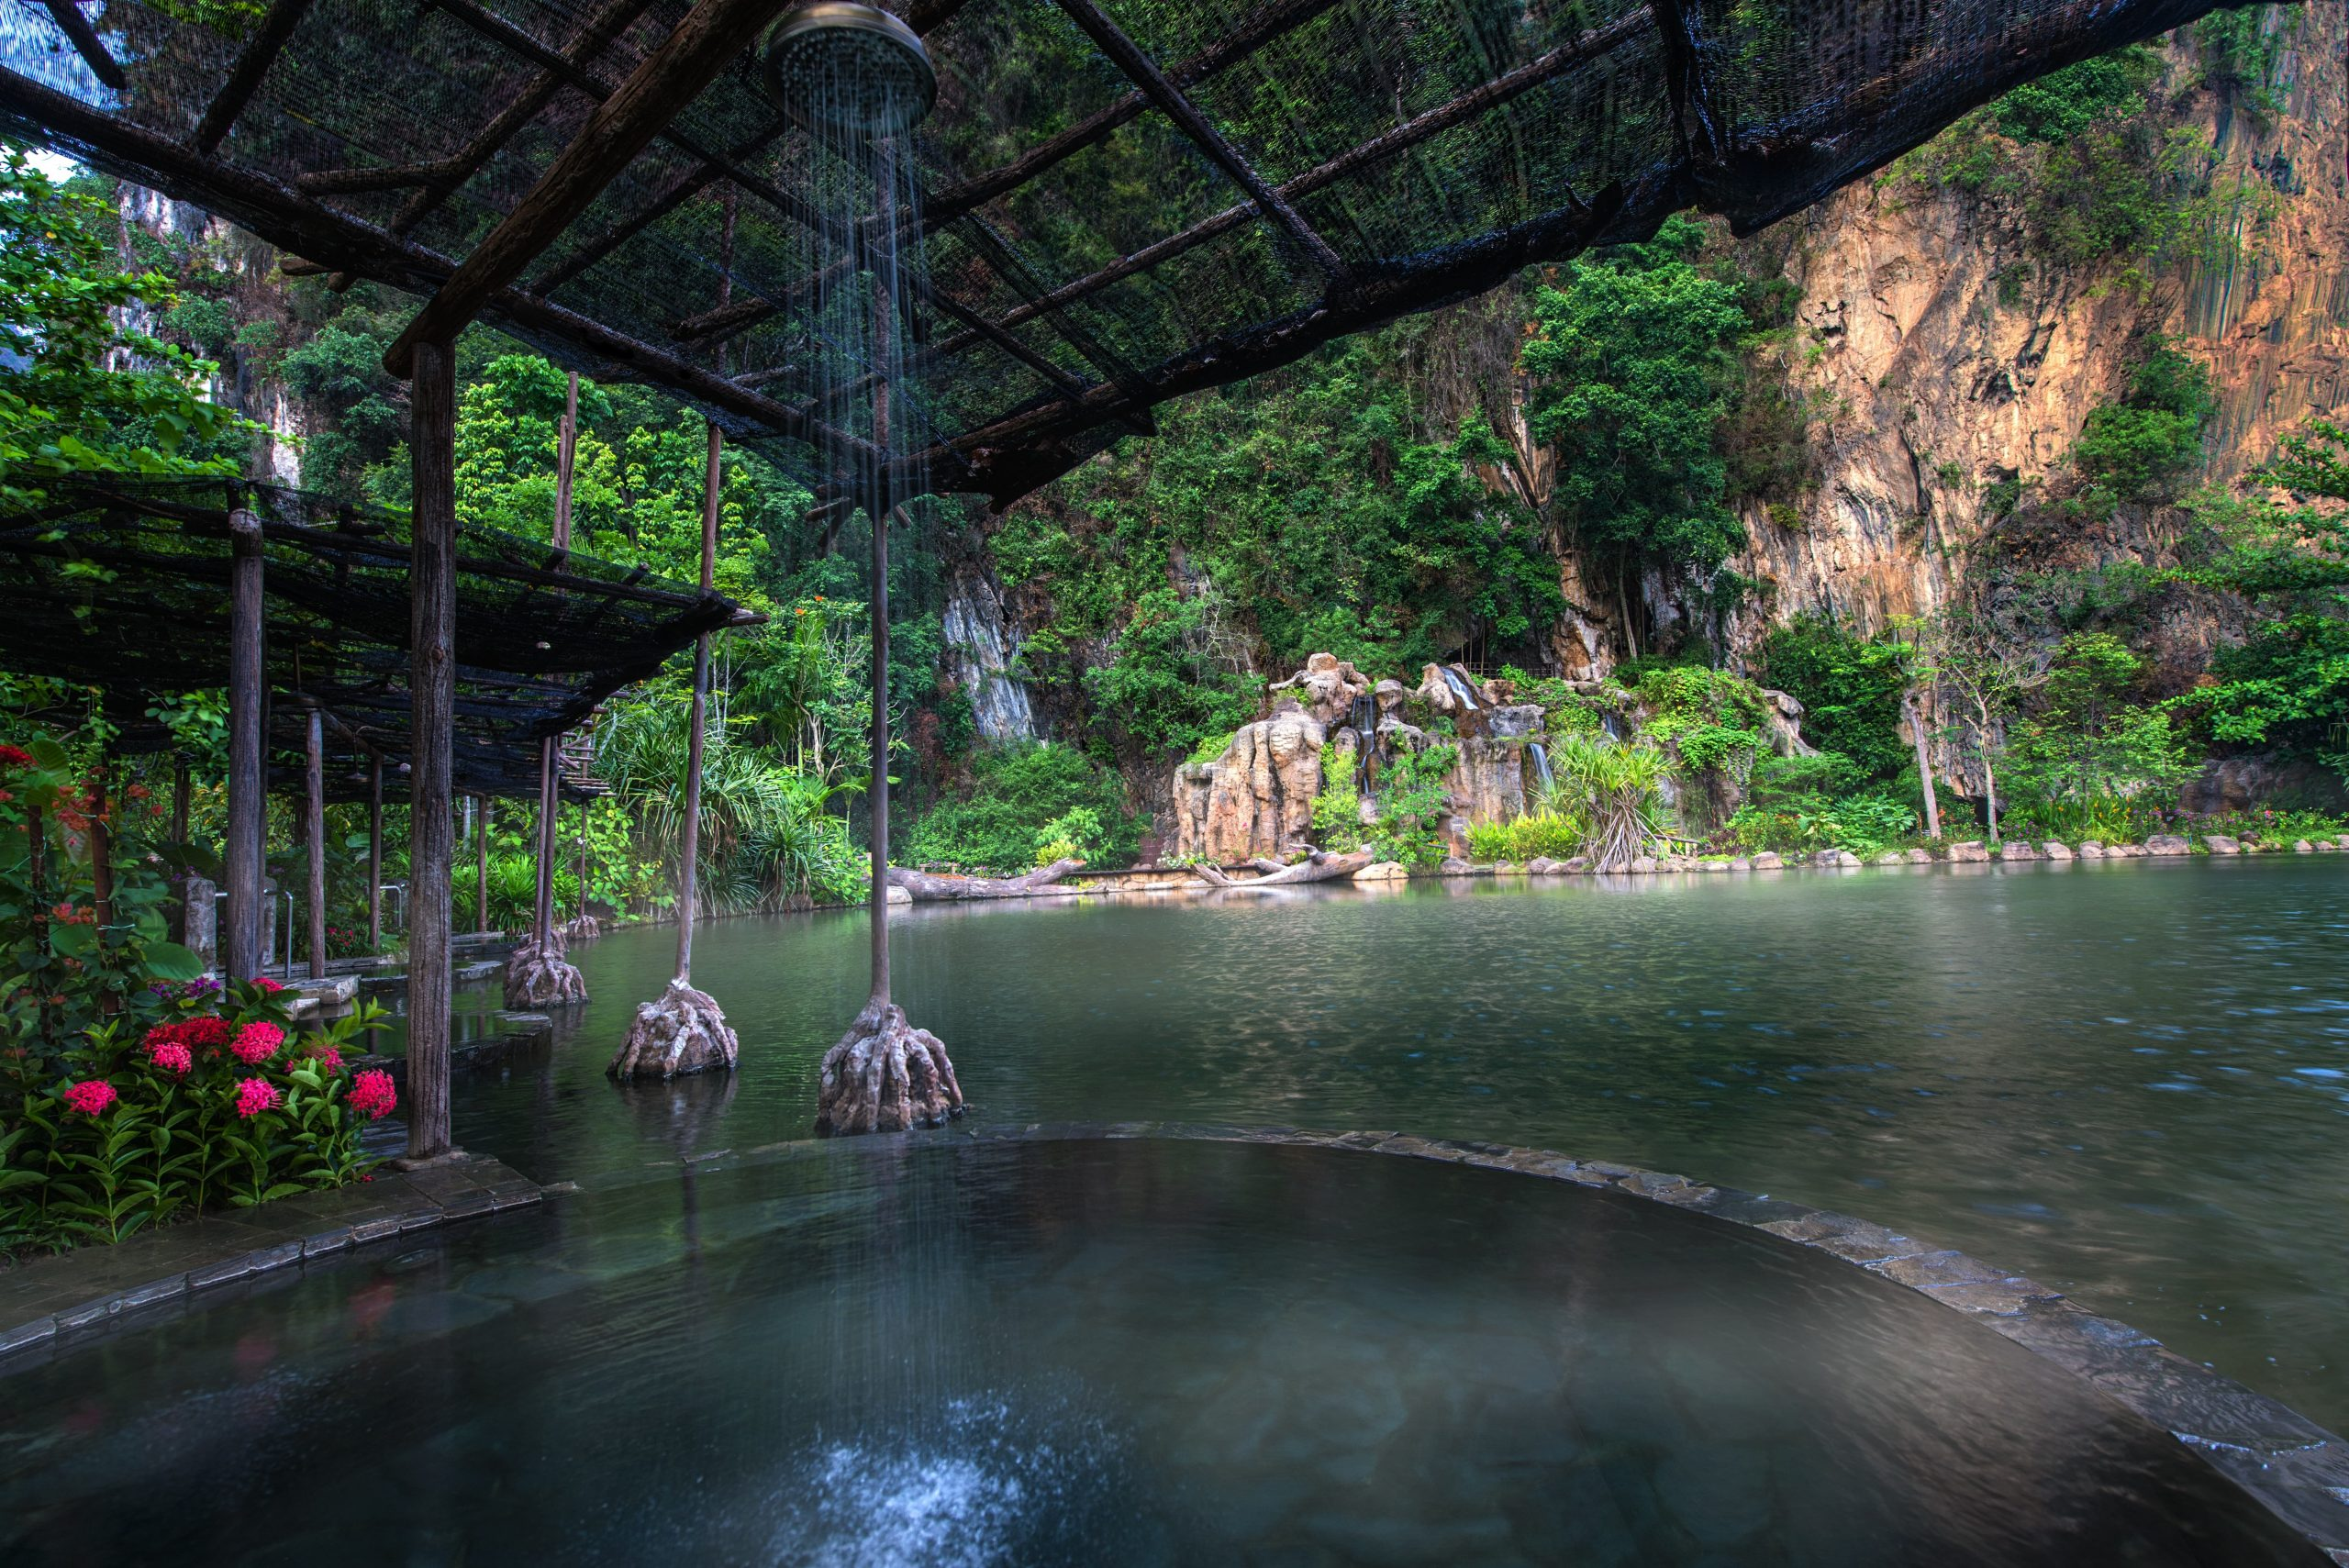 https://highend-traveller.com/the-banjaran-hotsprings-retreat-invites-guests-to-escape-and-embraces-nature-with-unique-cave-dining-experience/